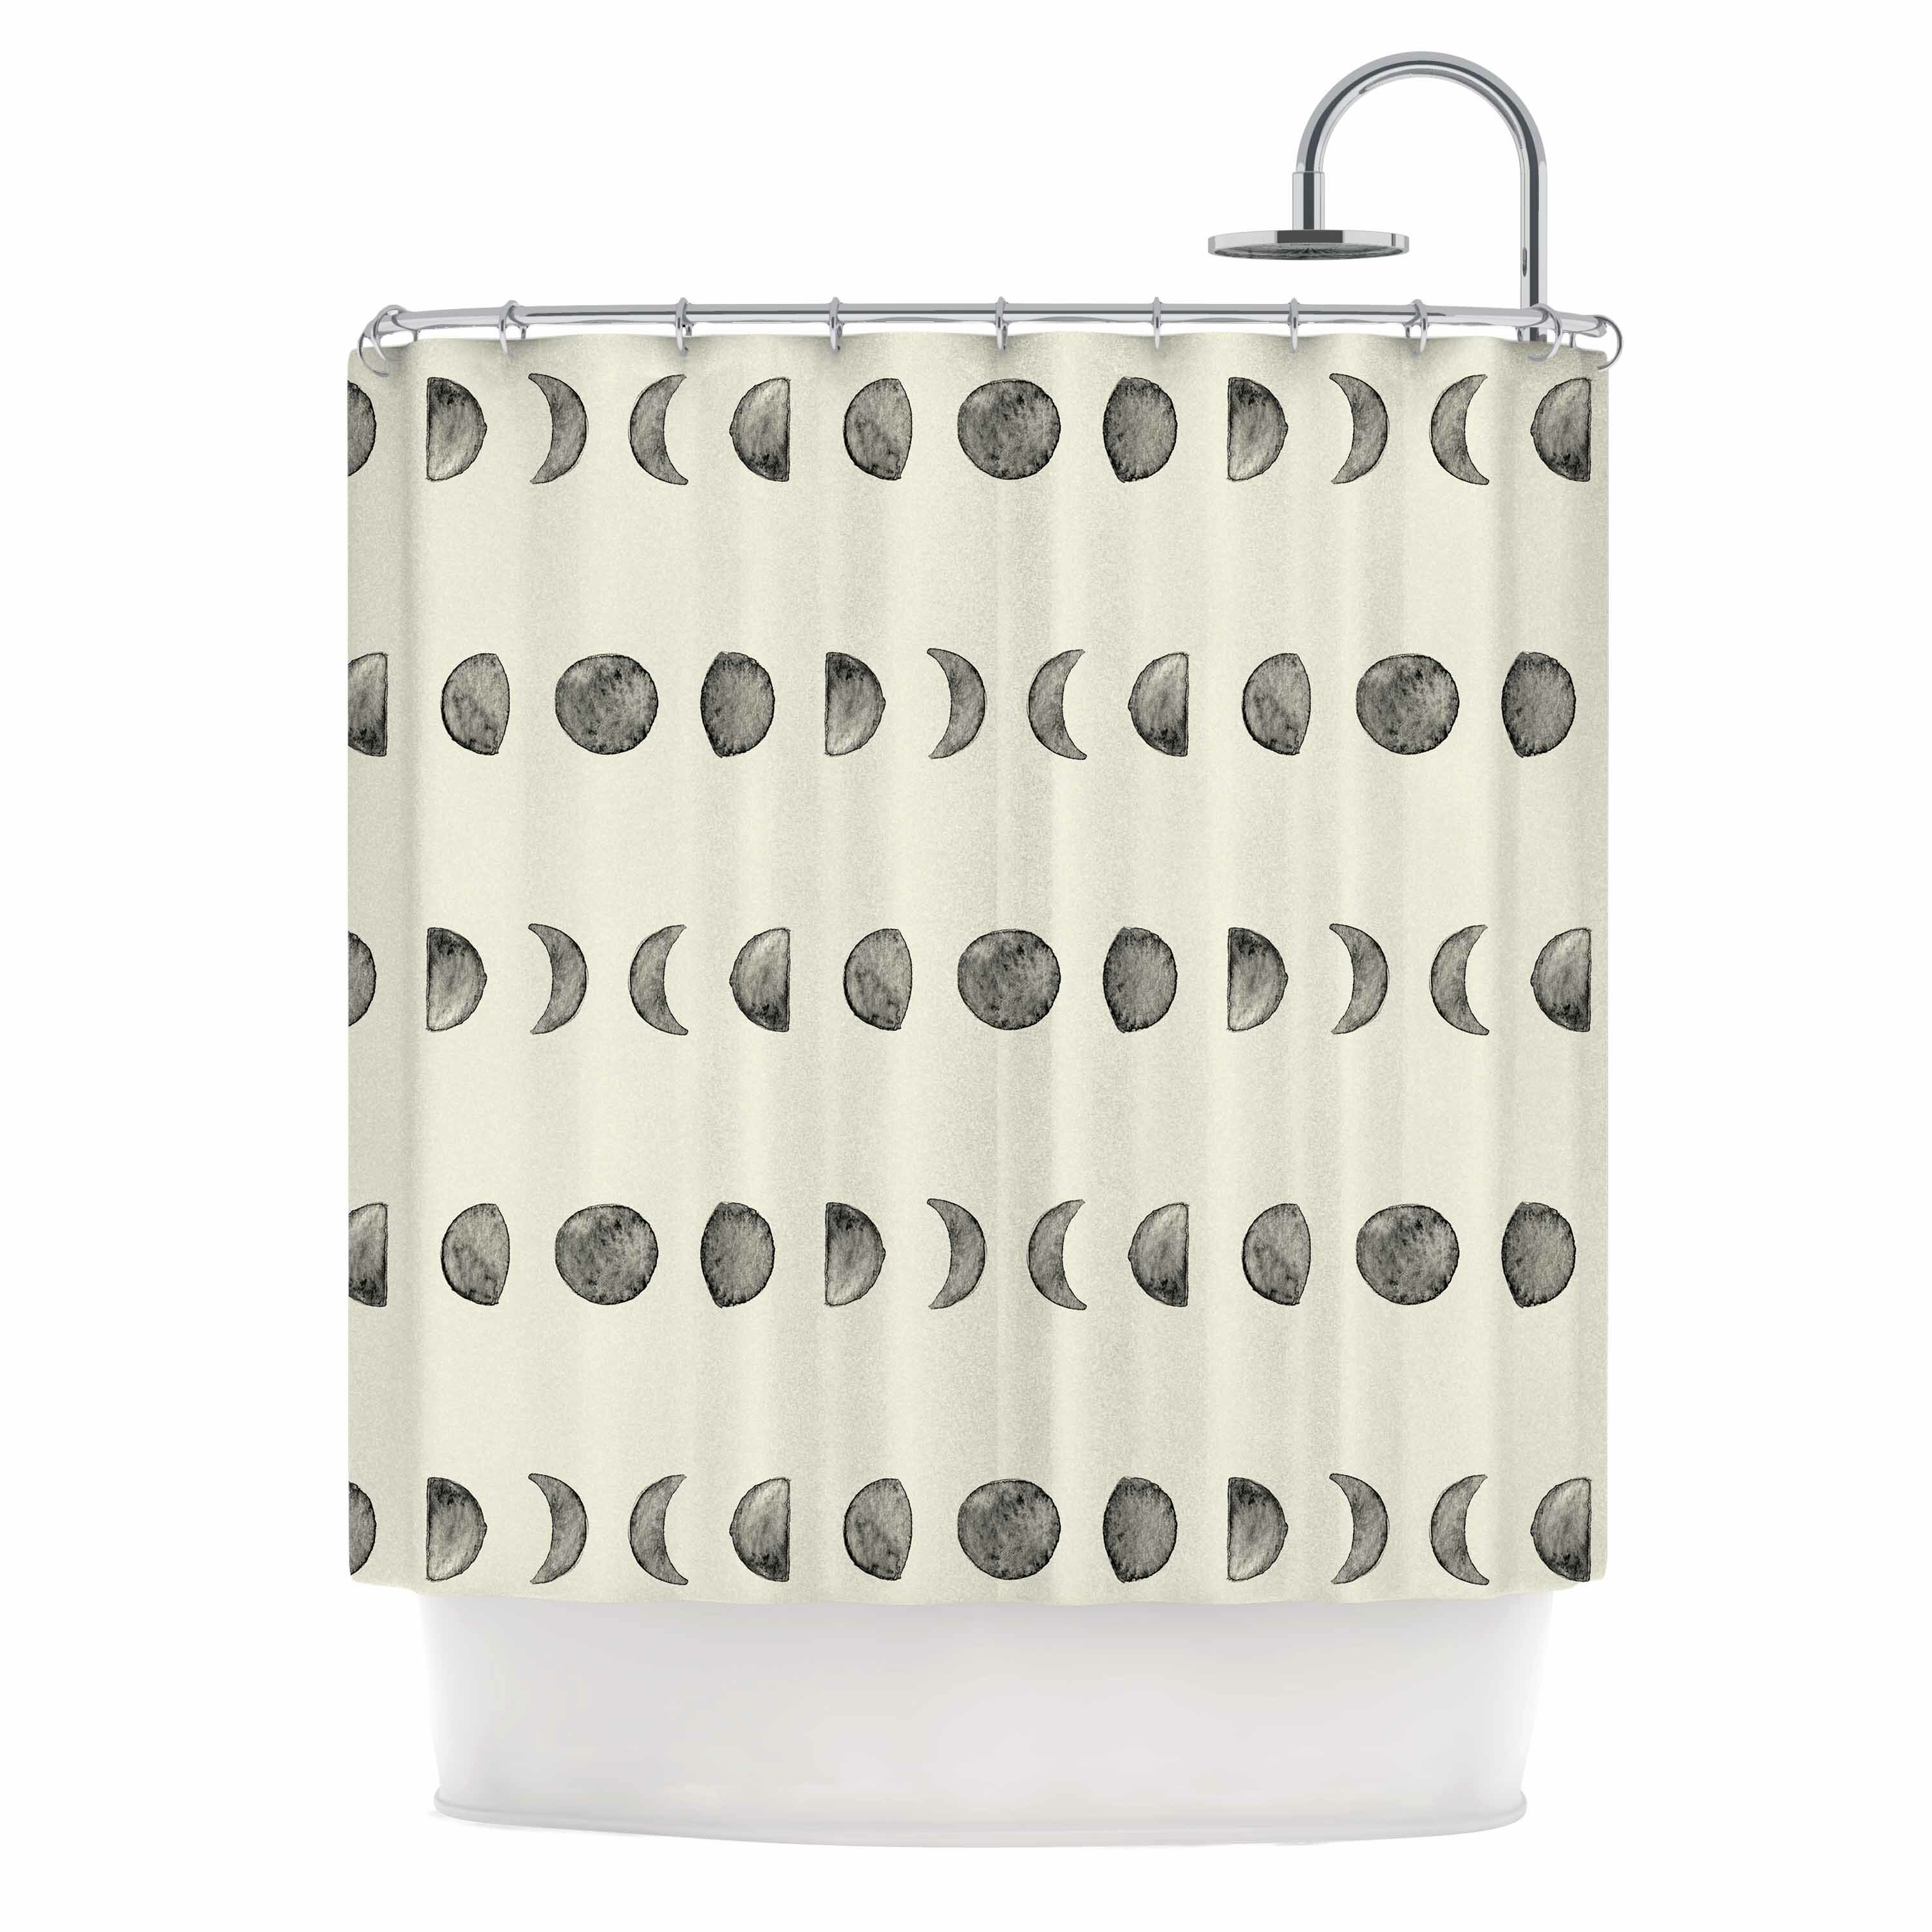 East Urban Home \'Phases of the Moon\' Shower Curtain   Wayfair